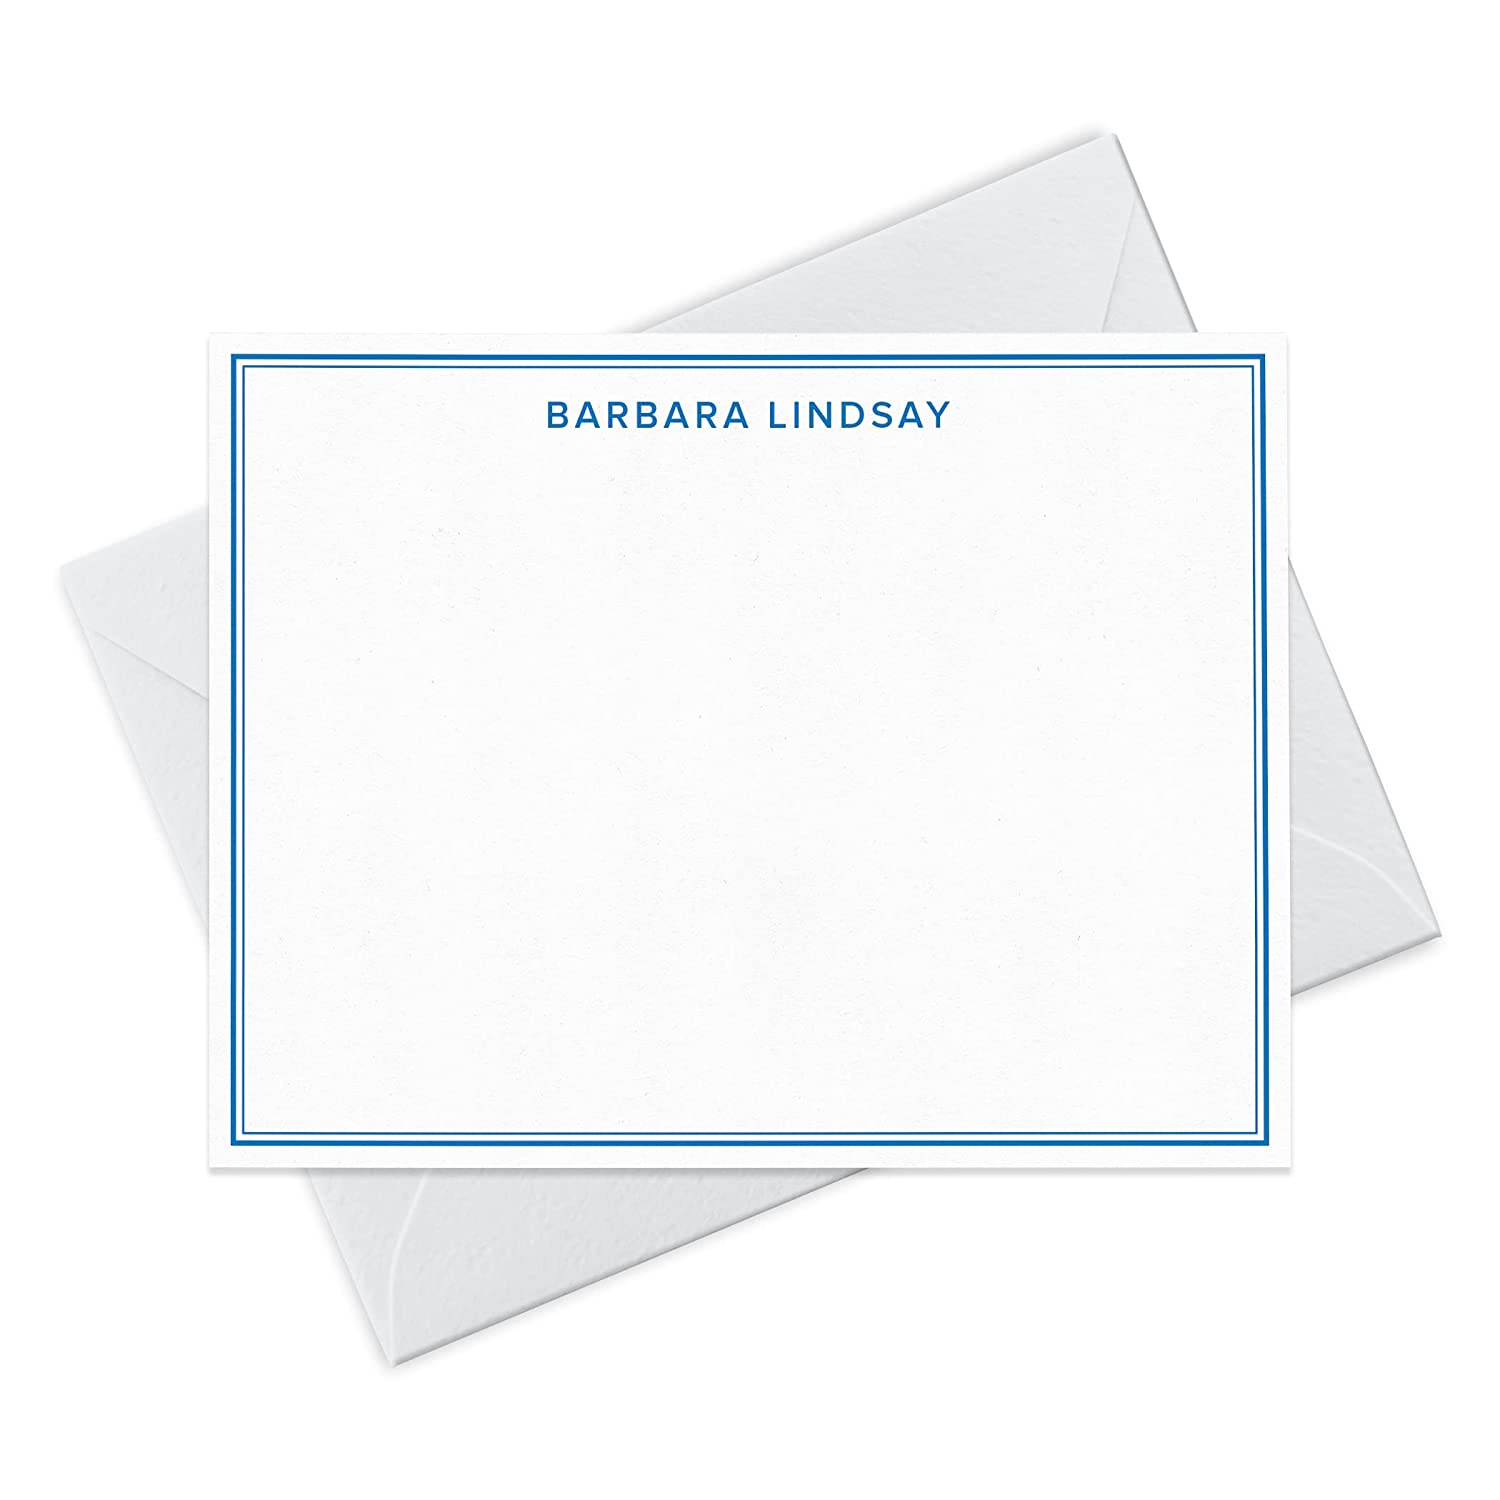 Fashionable Double Border Note Card and Personalized Outstanding Set Stationery Envelope